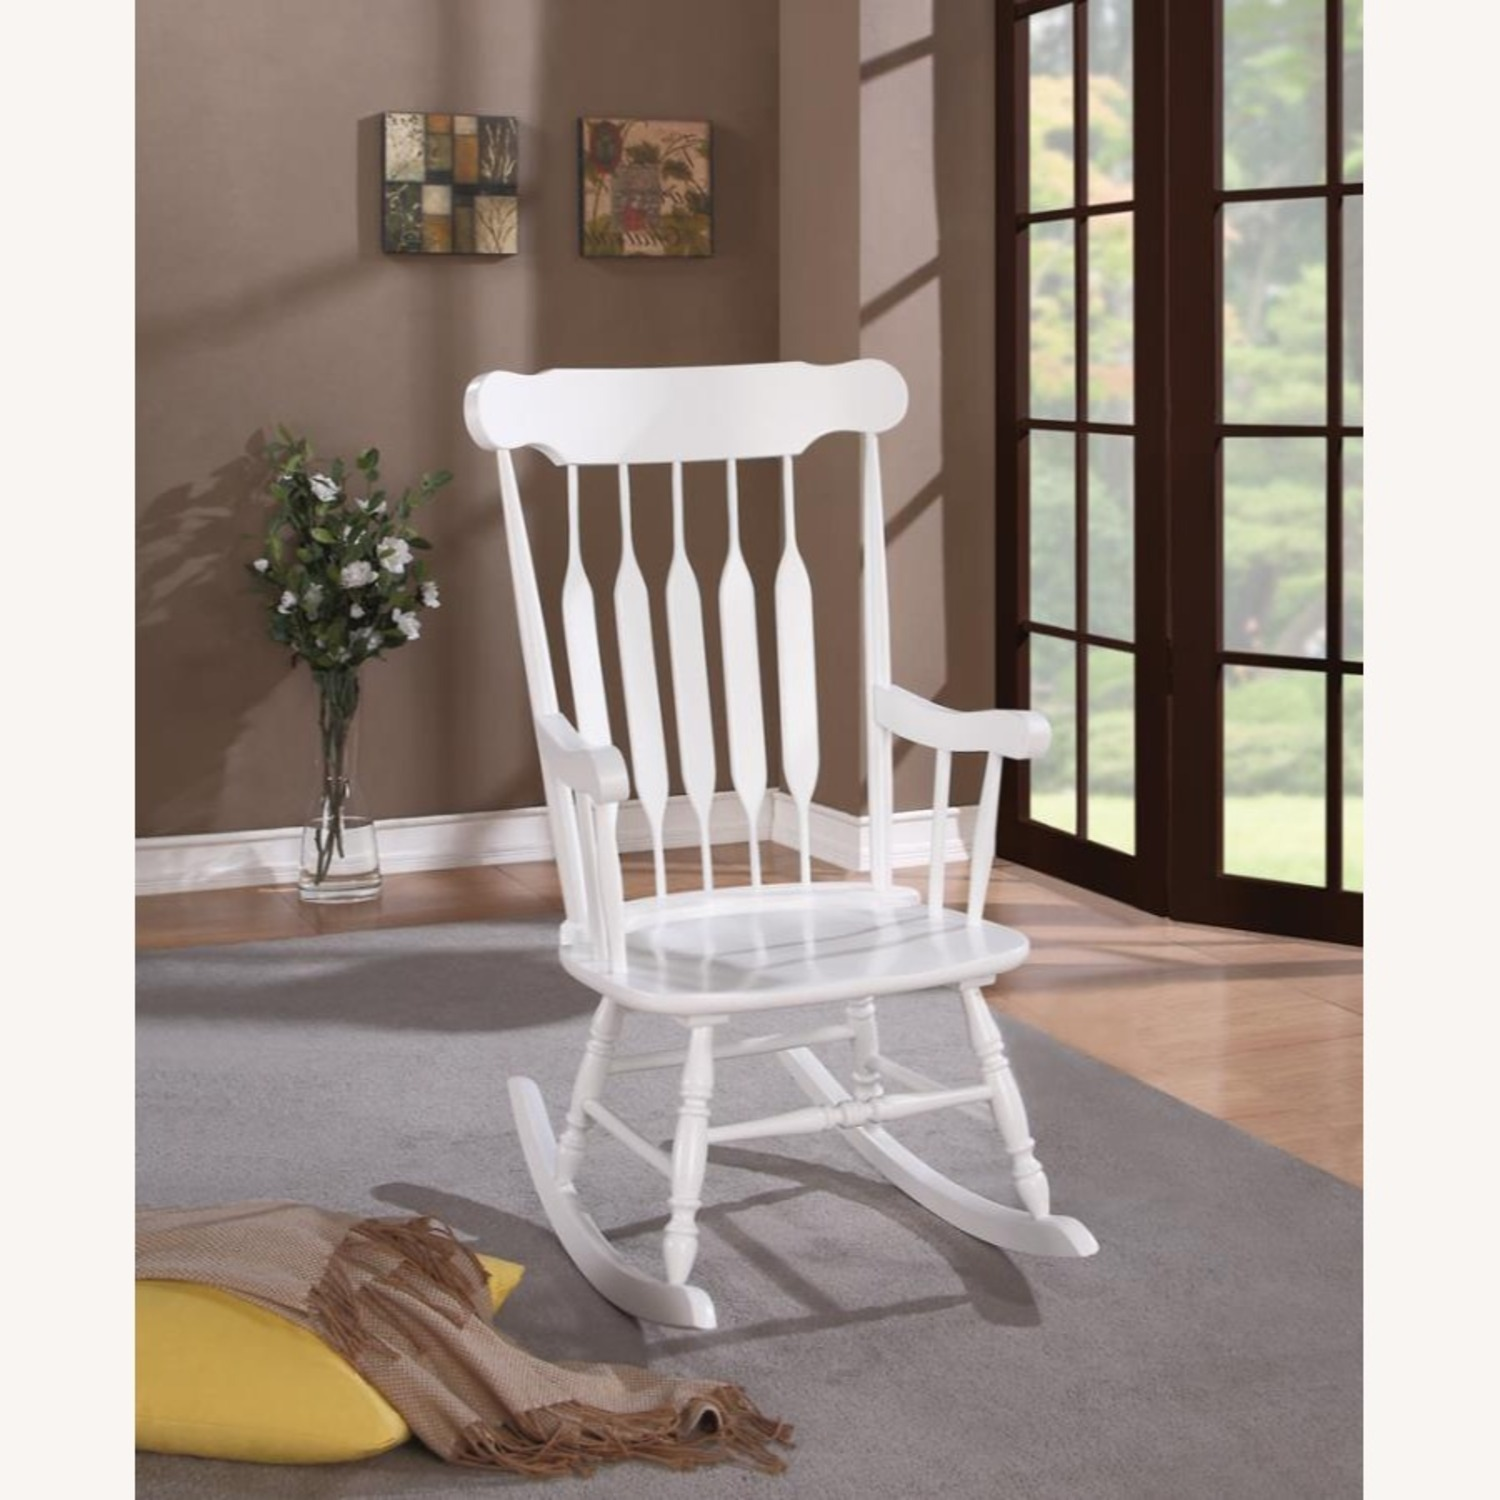 Rocking Chair In White Rubberwood Construction - image-1